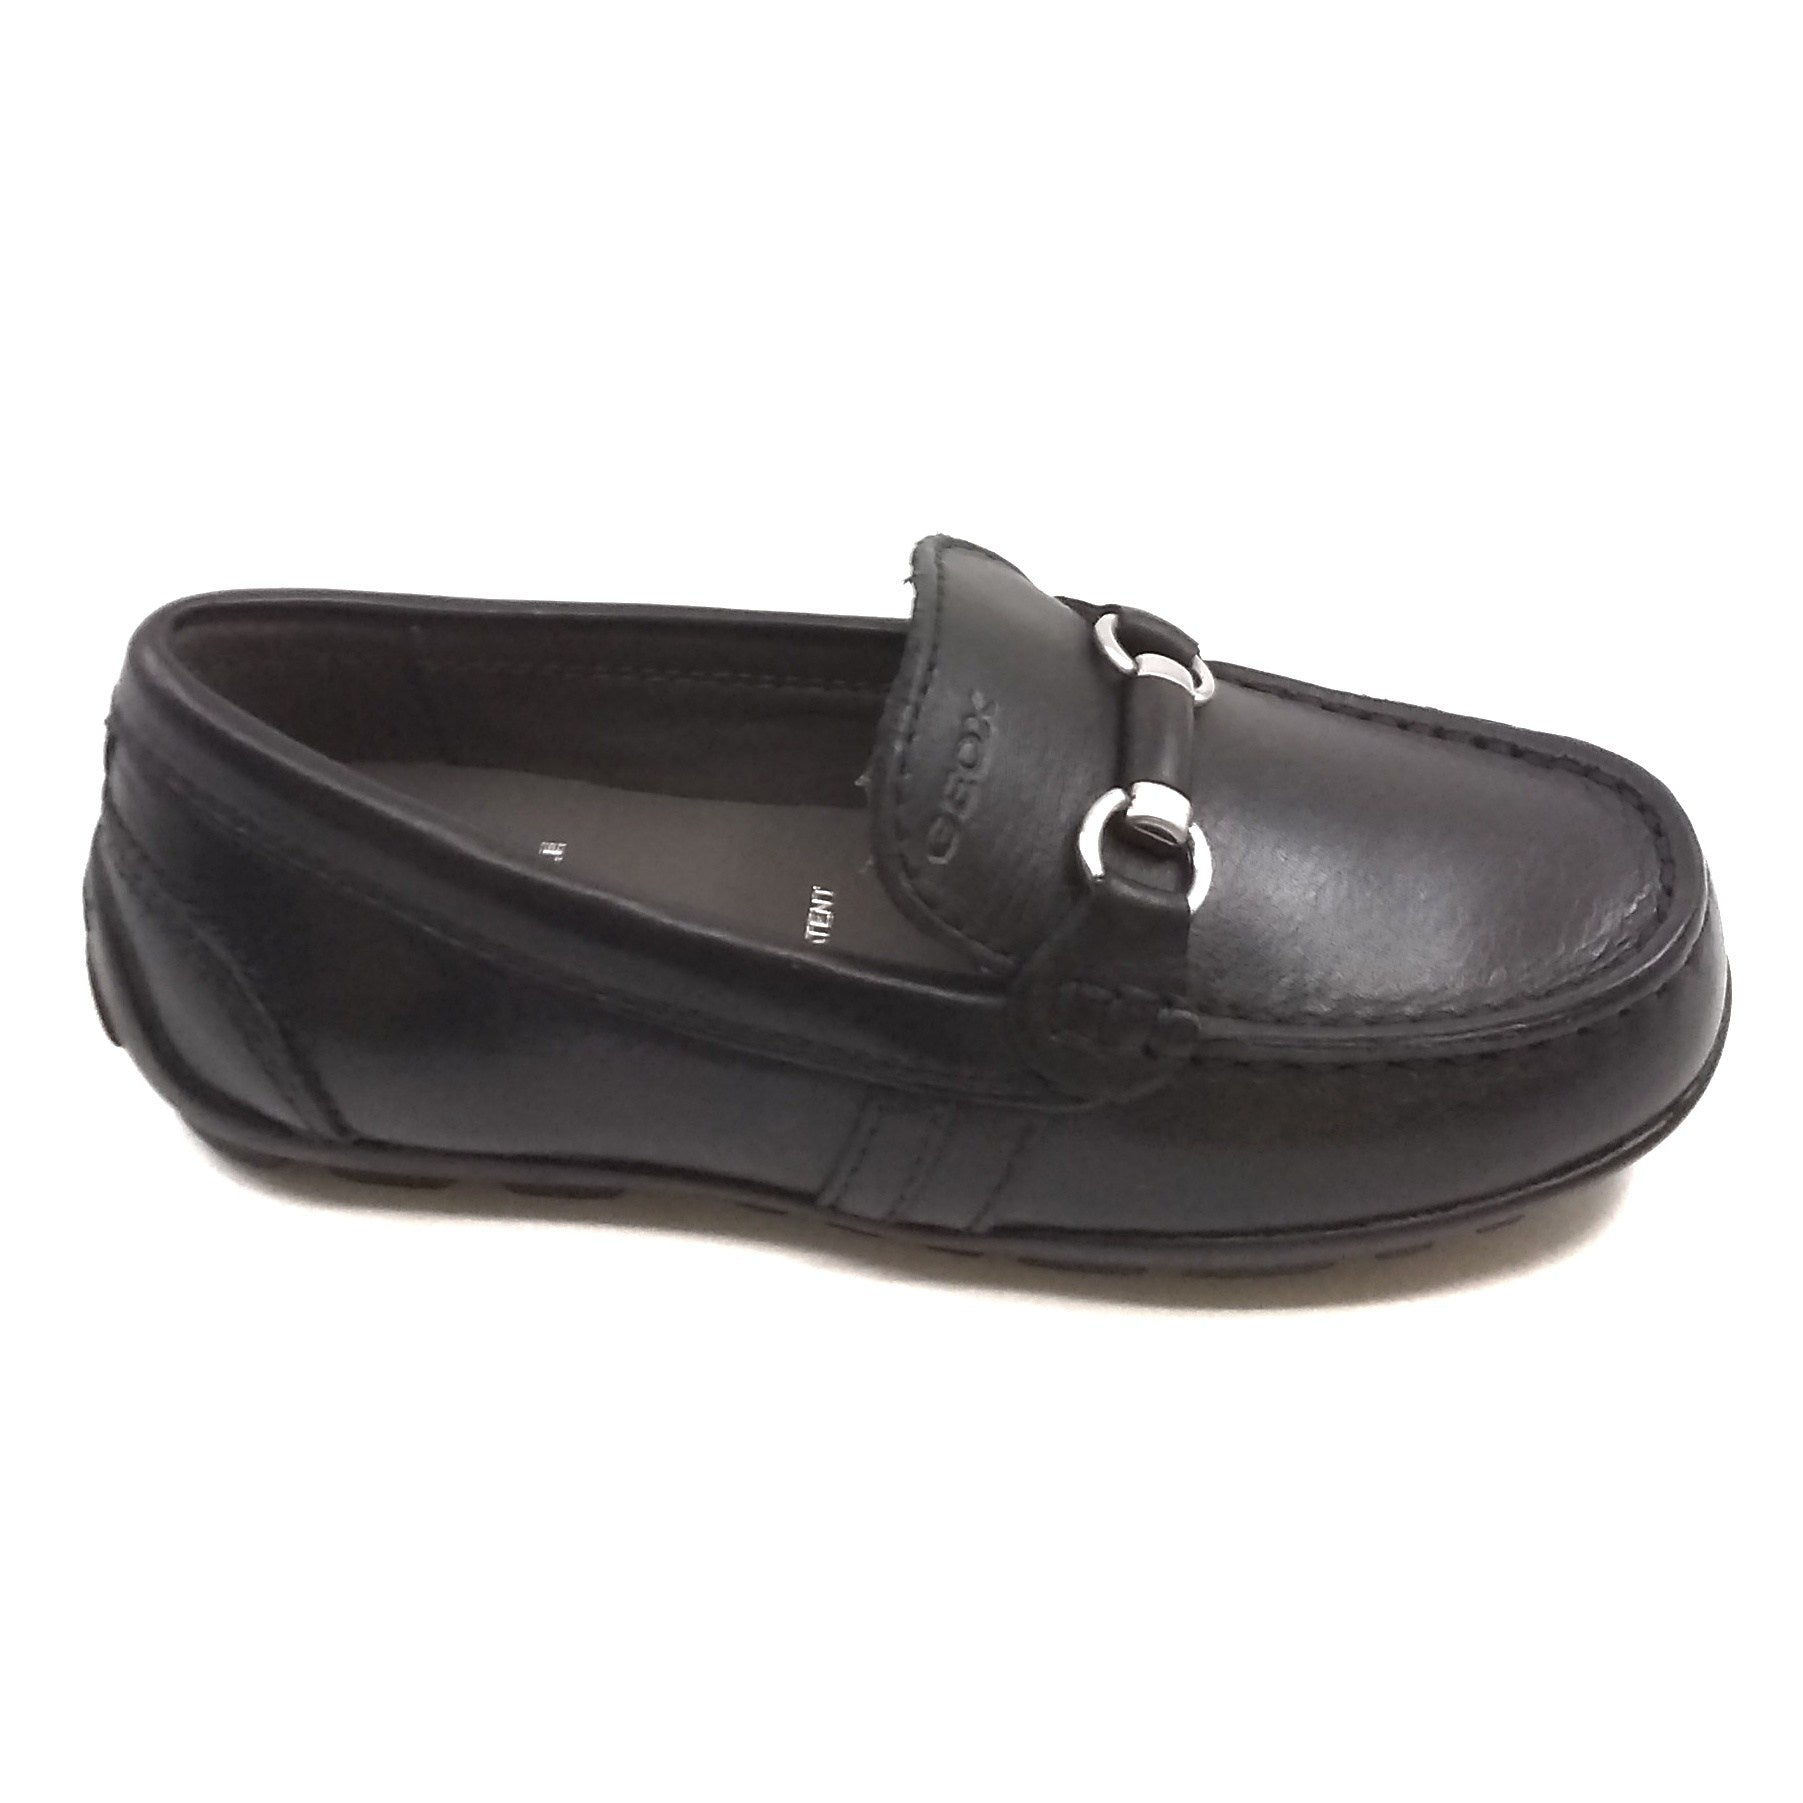 Geox Black Loafer With Silver And Black Buckle Across